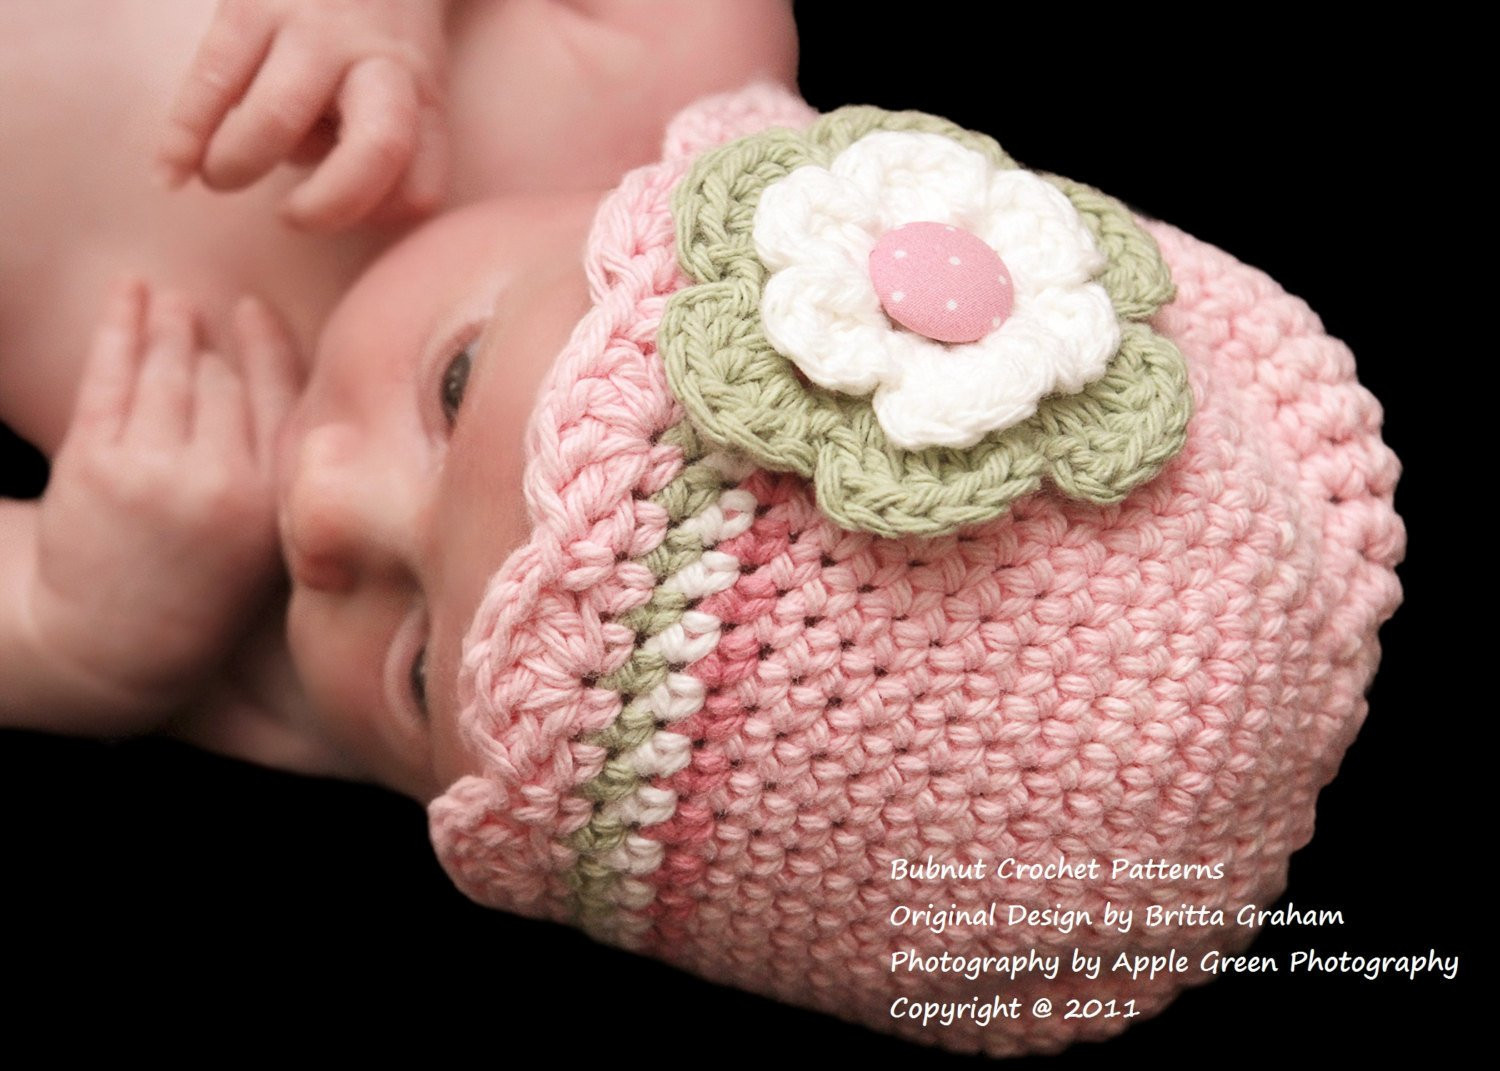 Newborn Crochet Patterns Elegant Baby Hat Crochet Pattern with Shell Trim Crochet Hat Pattern Of Incredible 41 Ideas Newborn Crochet Patterns